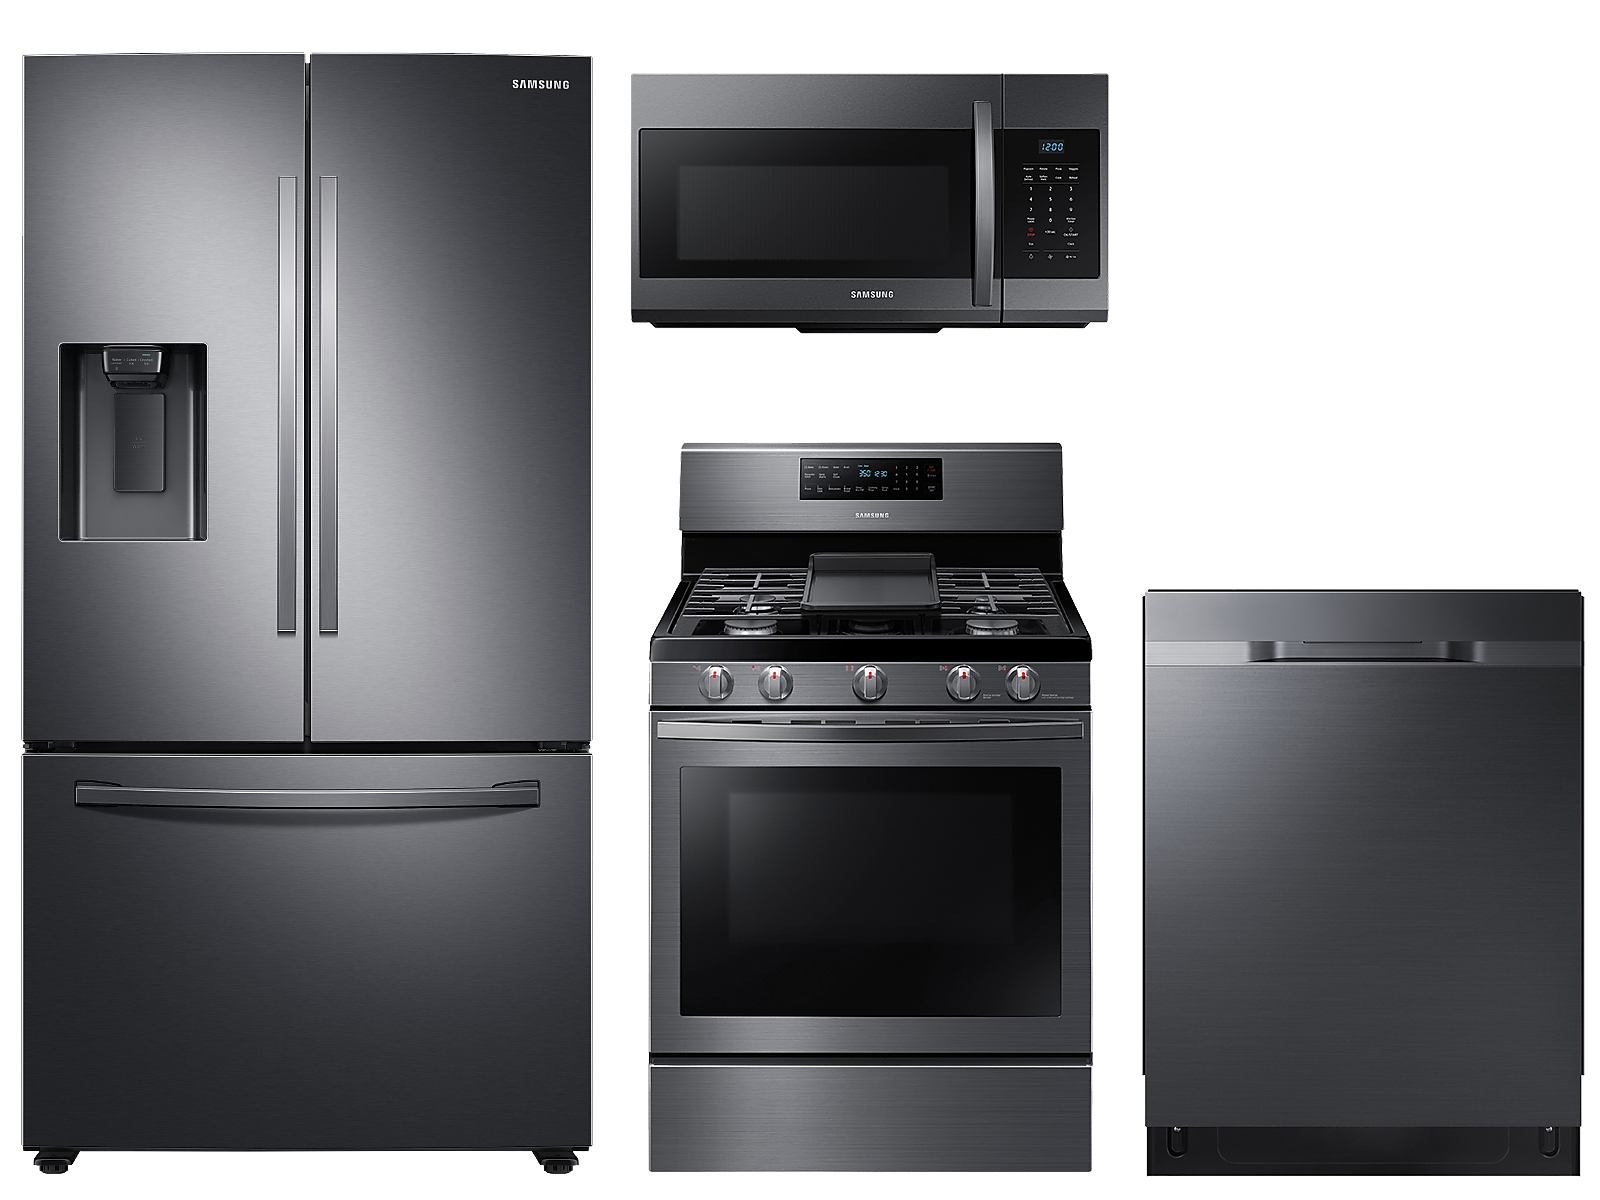 Samsung coupon: Samsung 27 cu. ft. 3-door refrigerator, convection gas range, microwave and dishwasher package(BNDL-1612902040826)